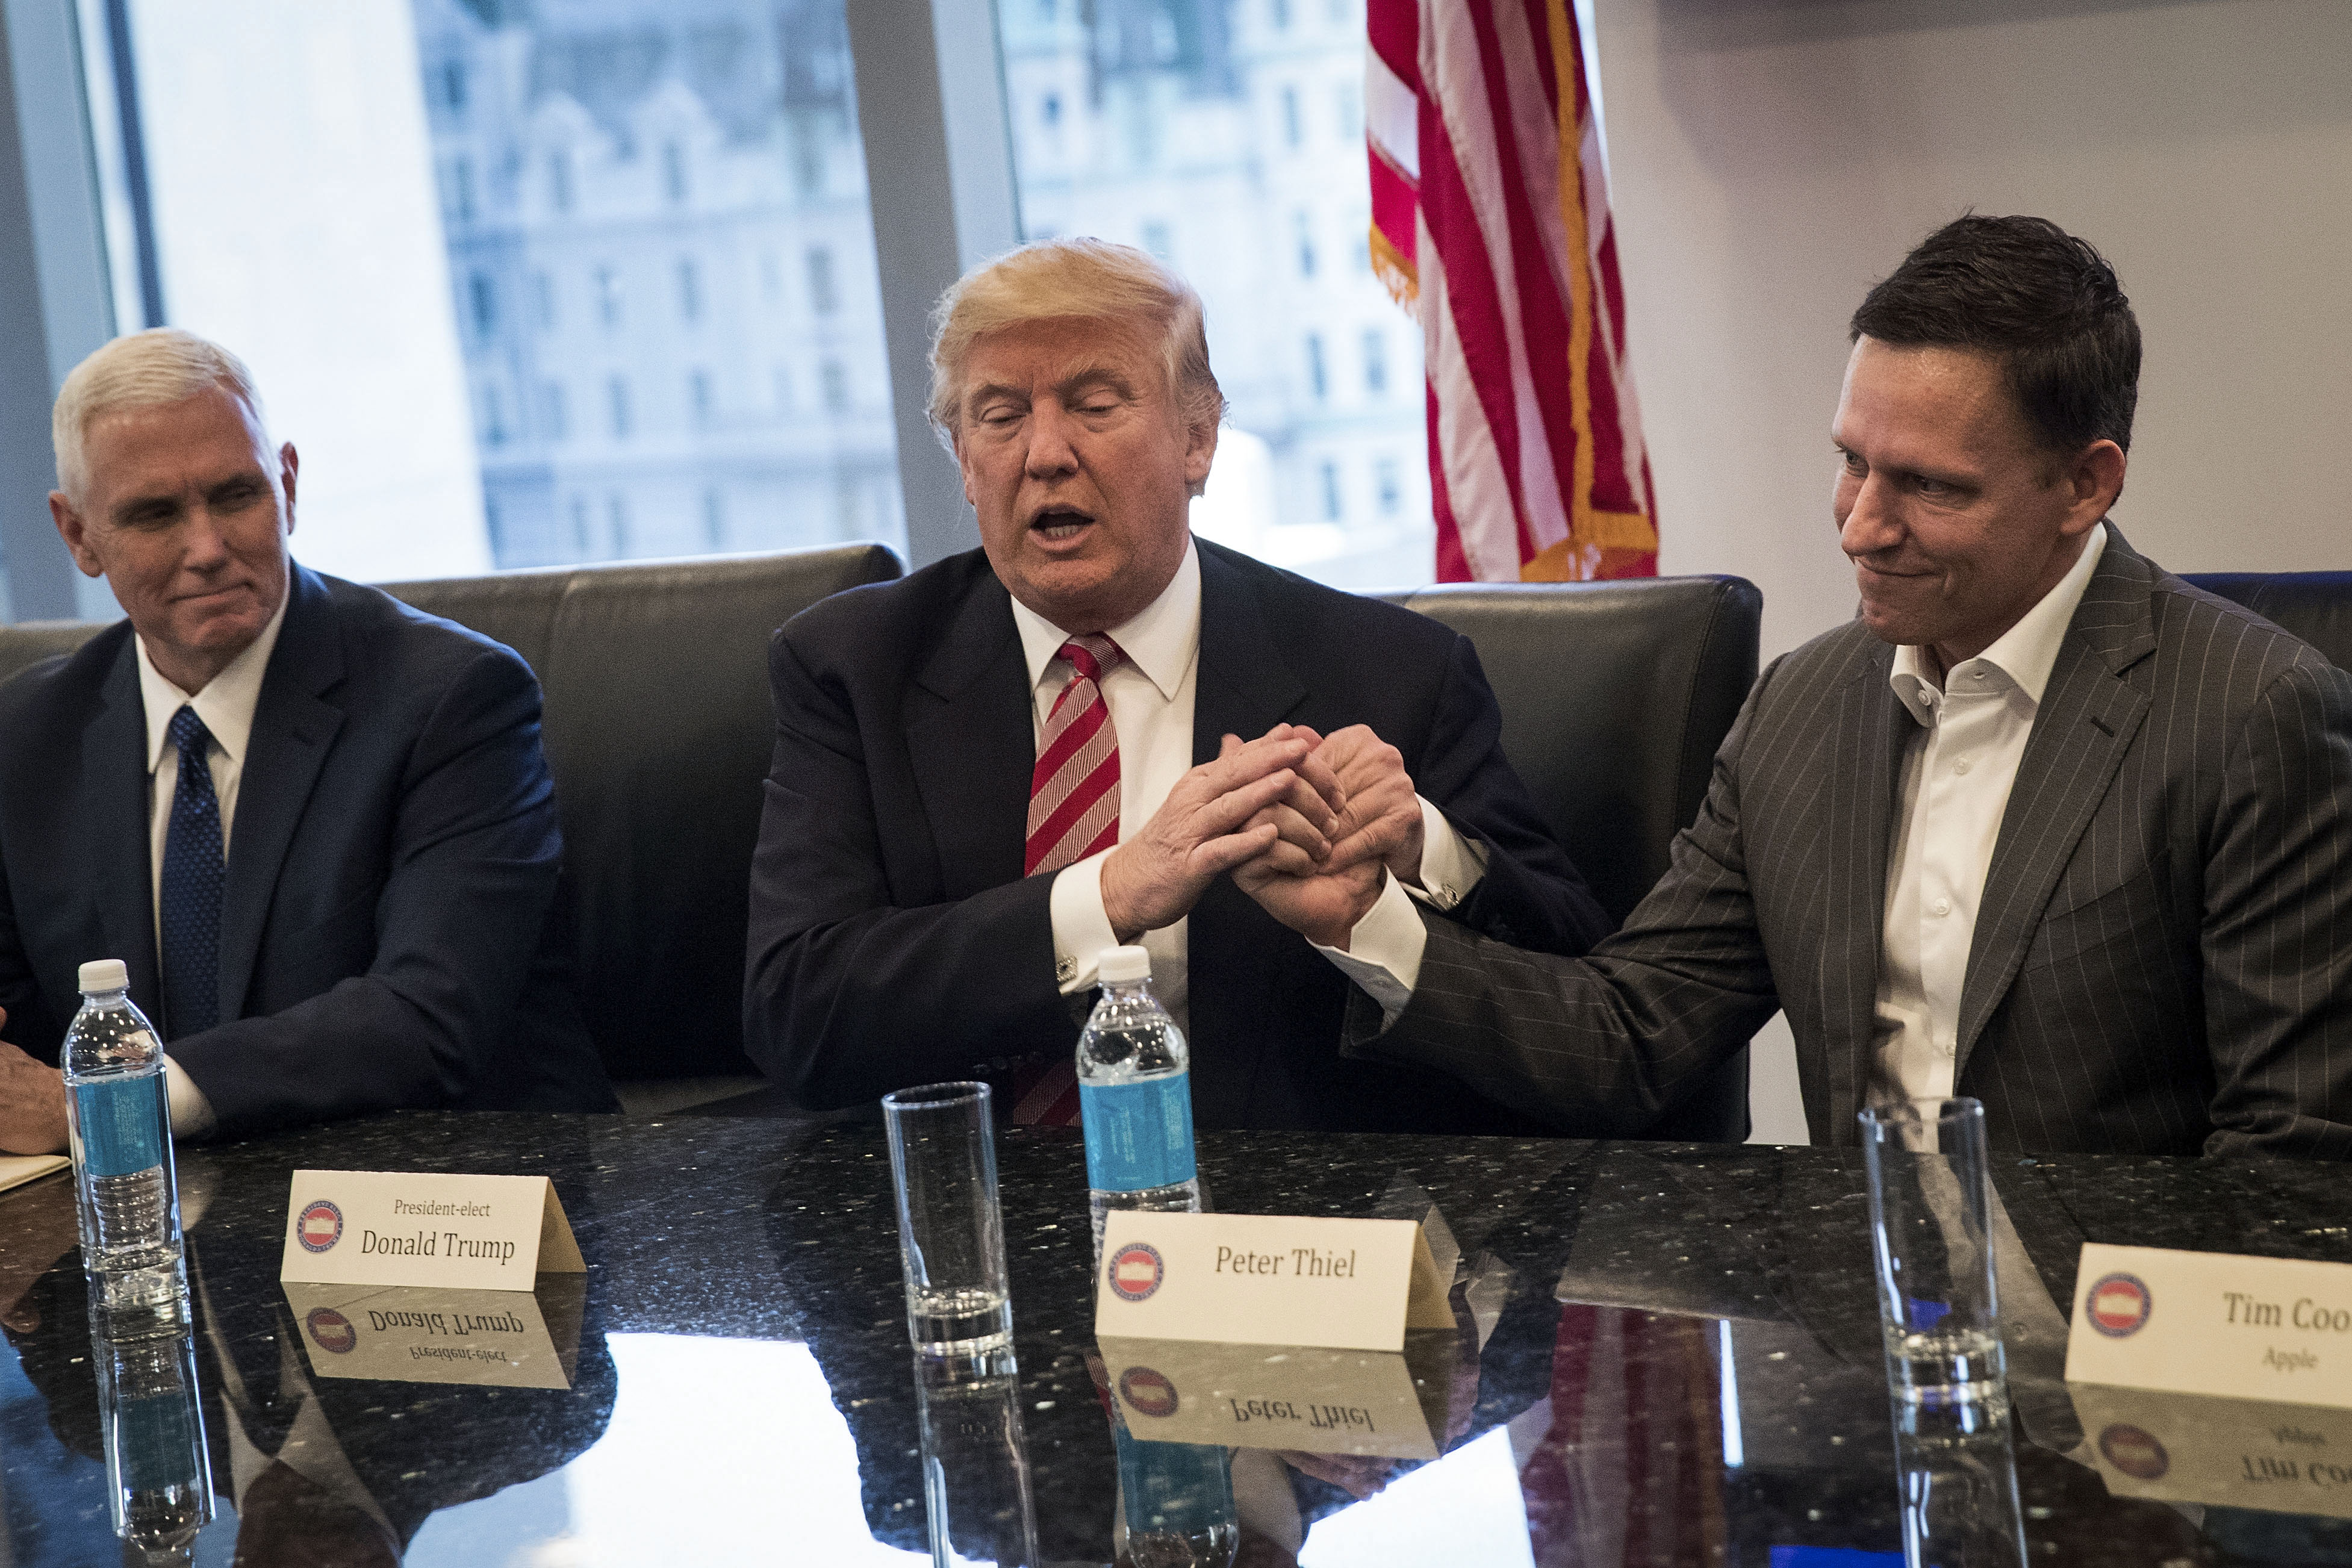 Donald Trump and Peter Thiel in an awkward handshake